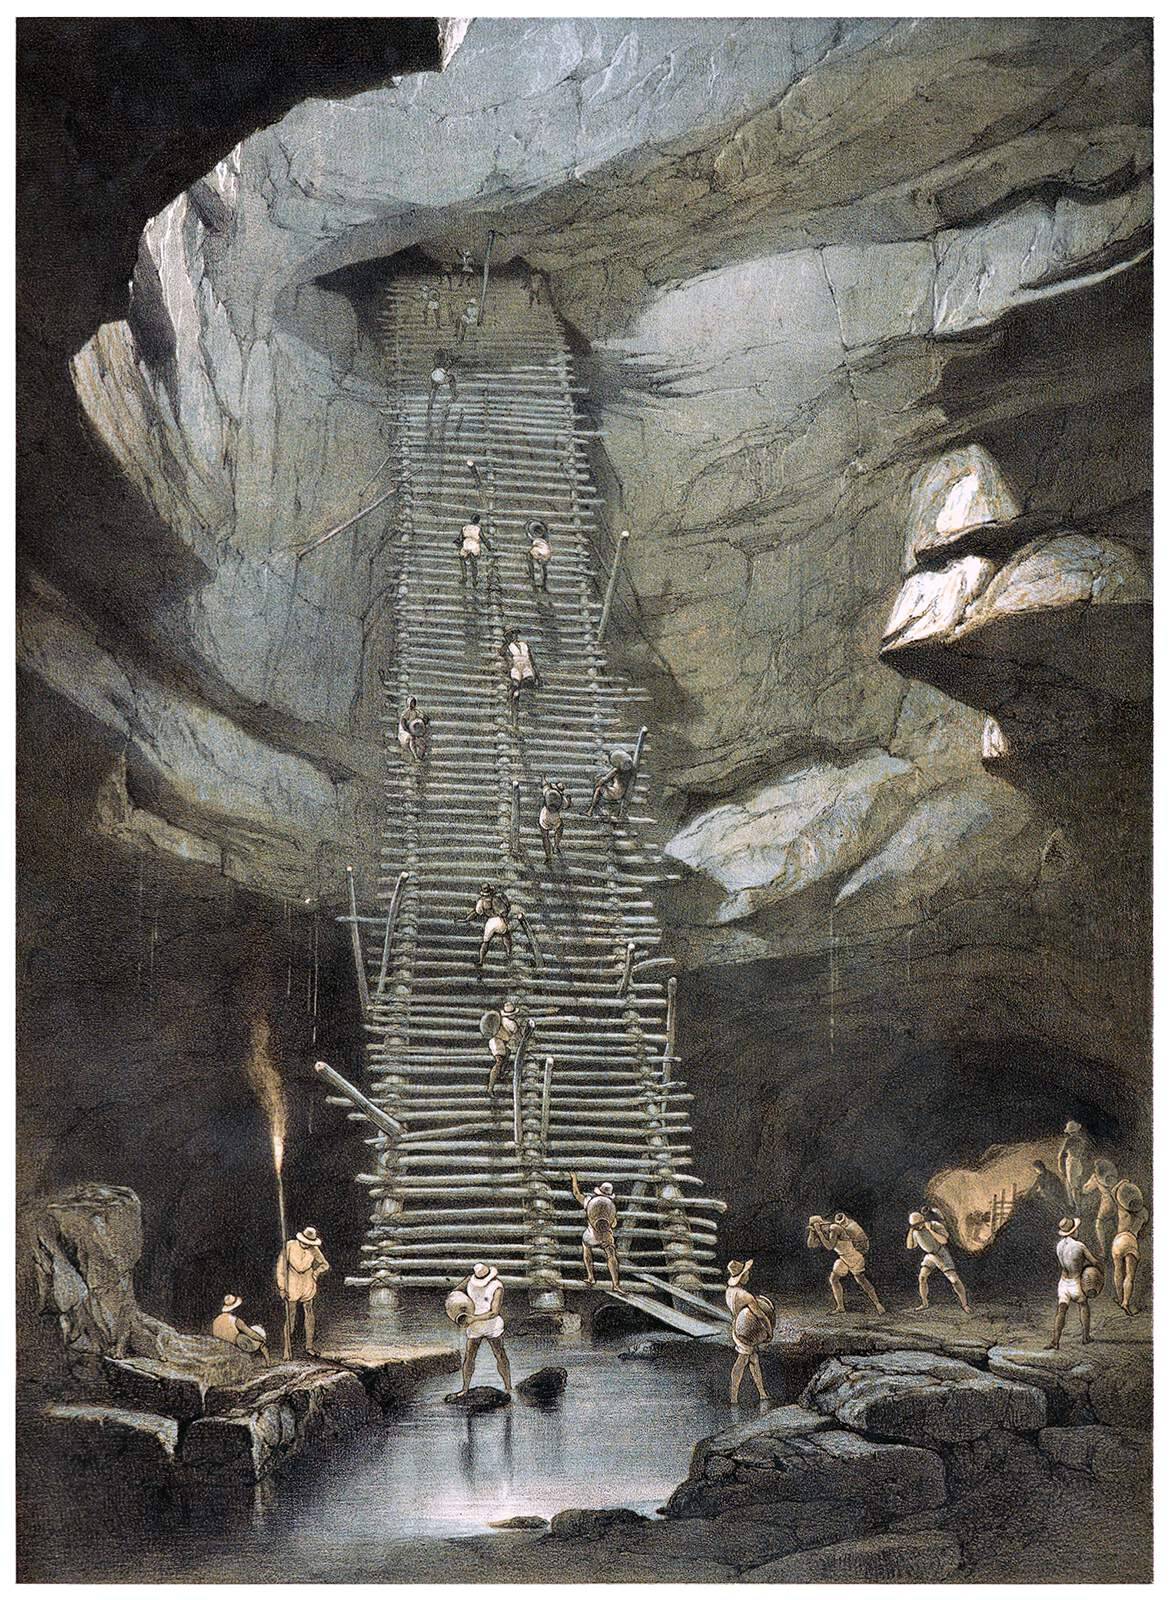 Well of Bolonchen,from Views of Ancient Monuments in Central America, Chiapas and Yucatan 1844